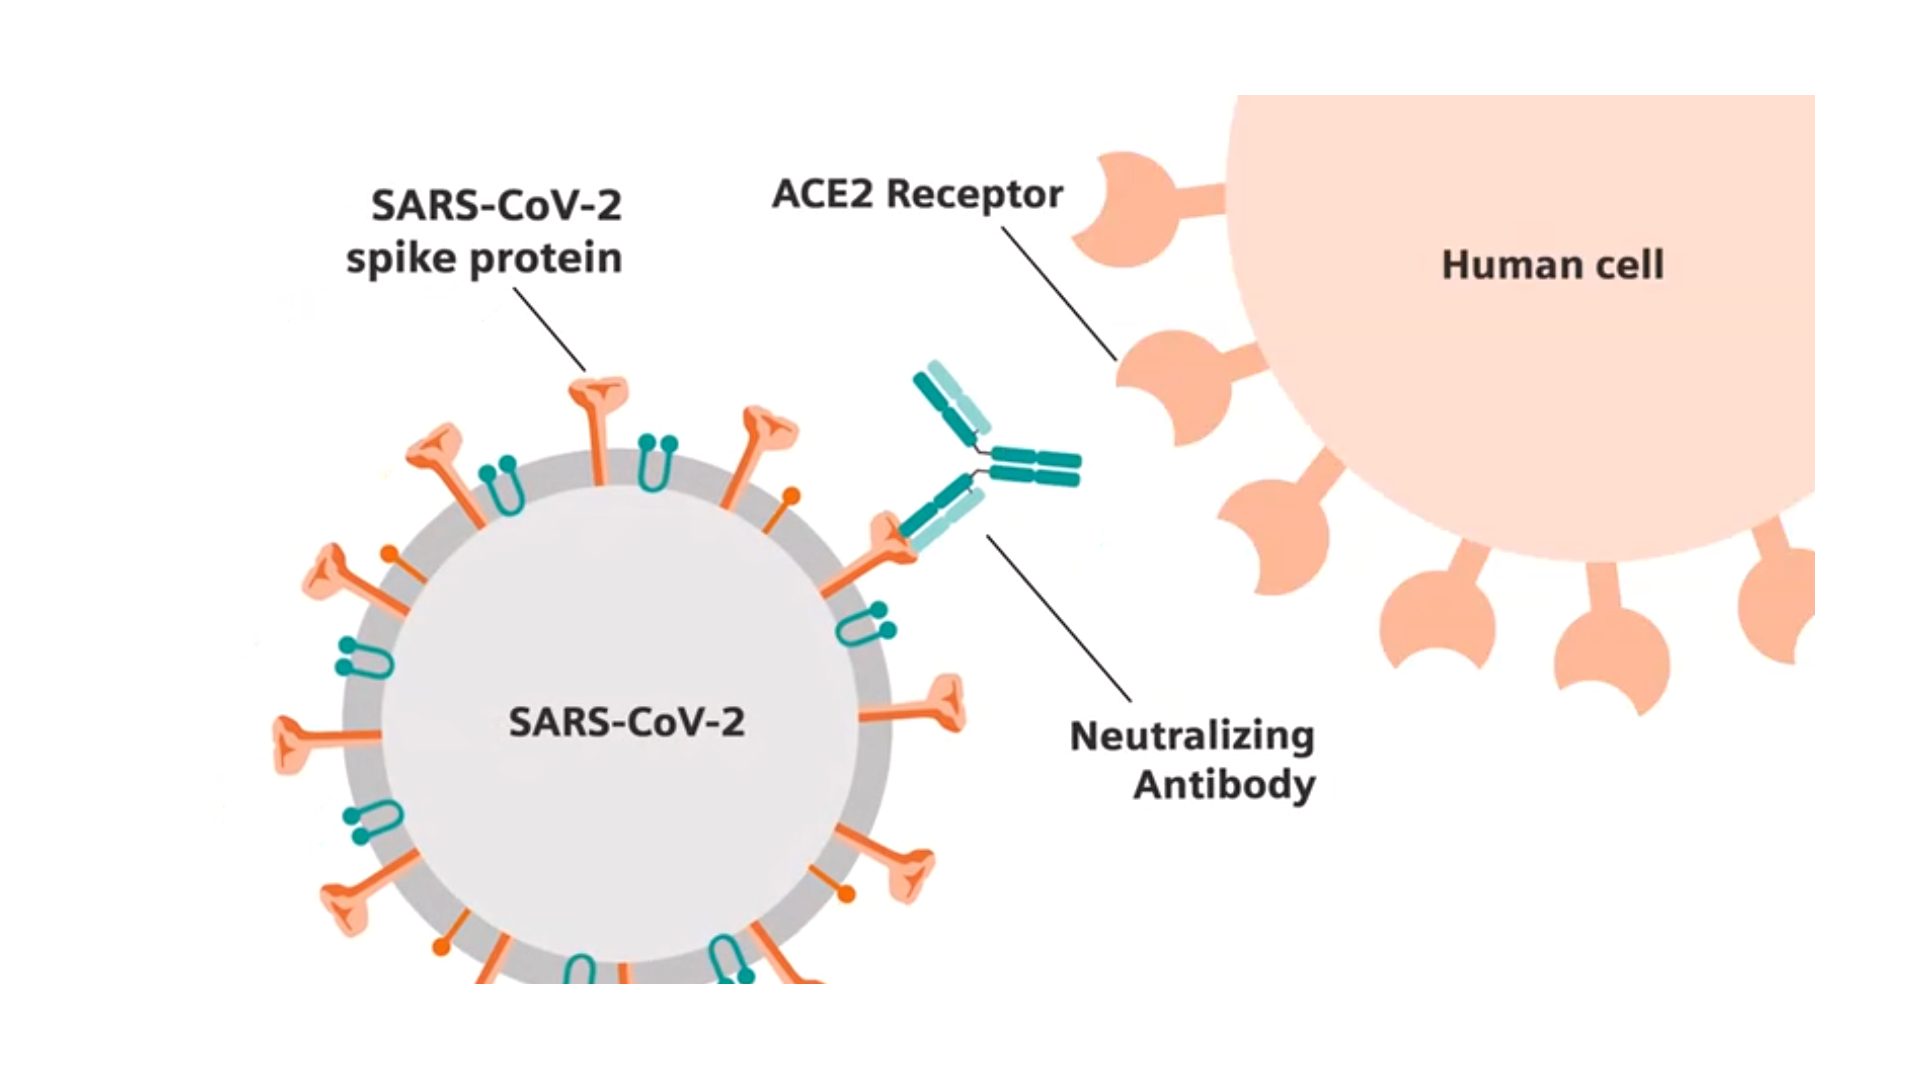 Importantly, the test detects antibodies to a key protein on the surface of the SARS-CoV-2 virus—a spike protein, which binds the virus to cells with a distinct human receptor found in lungs, heart, multiple organs and blood vessels. Studies indicate that certain (neutralizing) antibodies to the spike protein can disarm SARS-CoV-2. Multiple potential vaccines in development for SARS-CoV-2 include the spike protein within their focus.